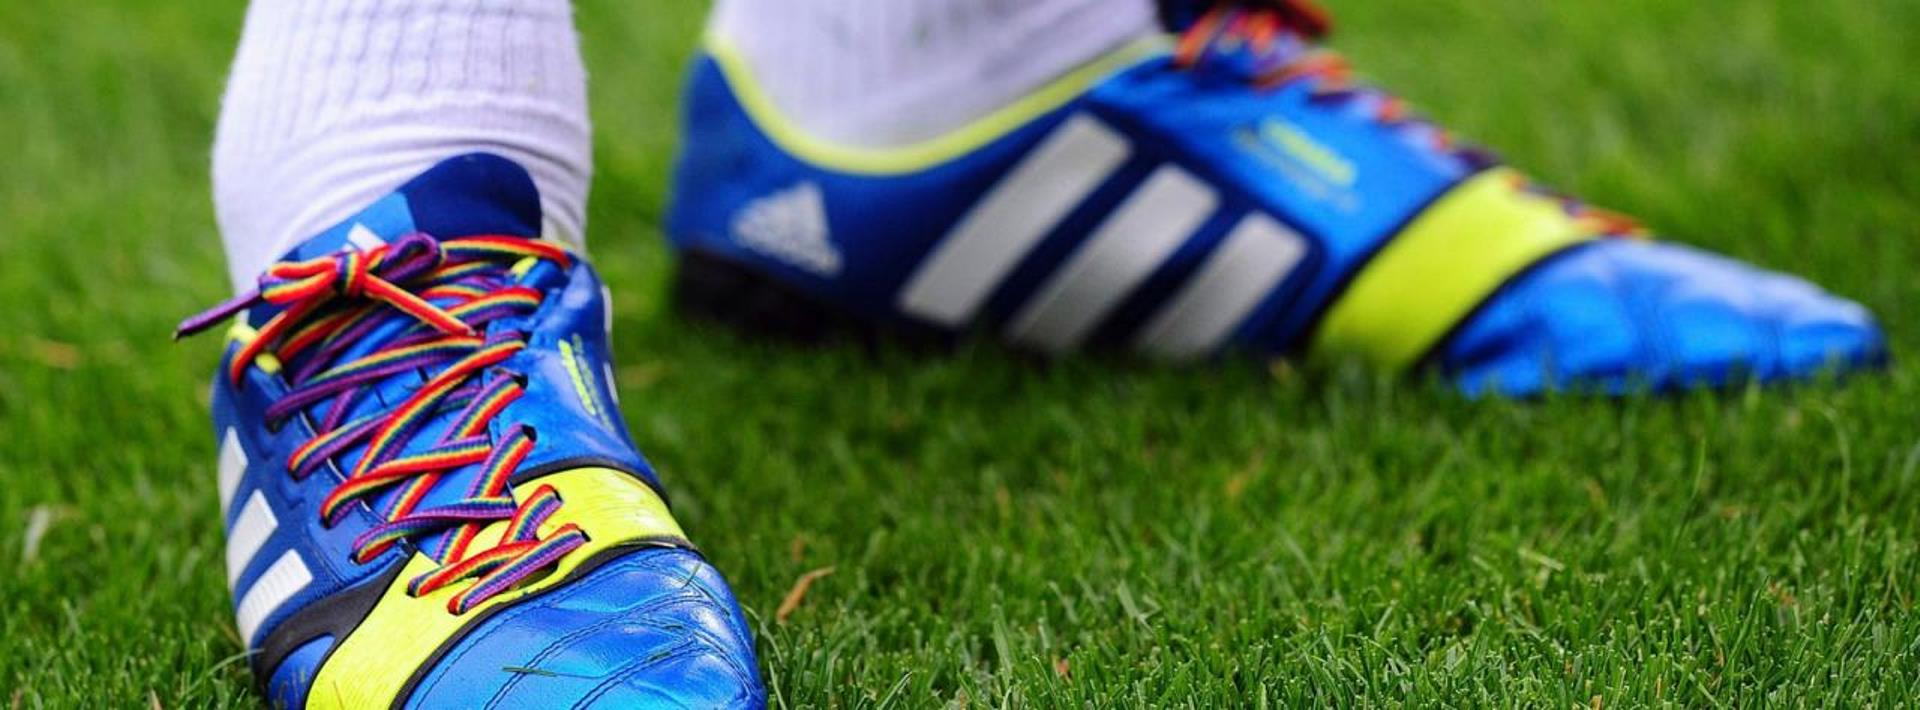 Football boot with rainbow laces